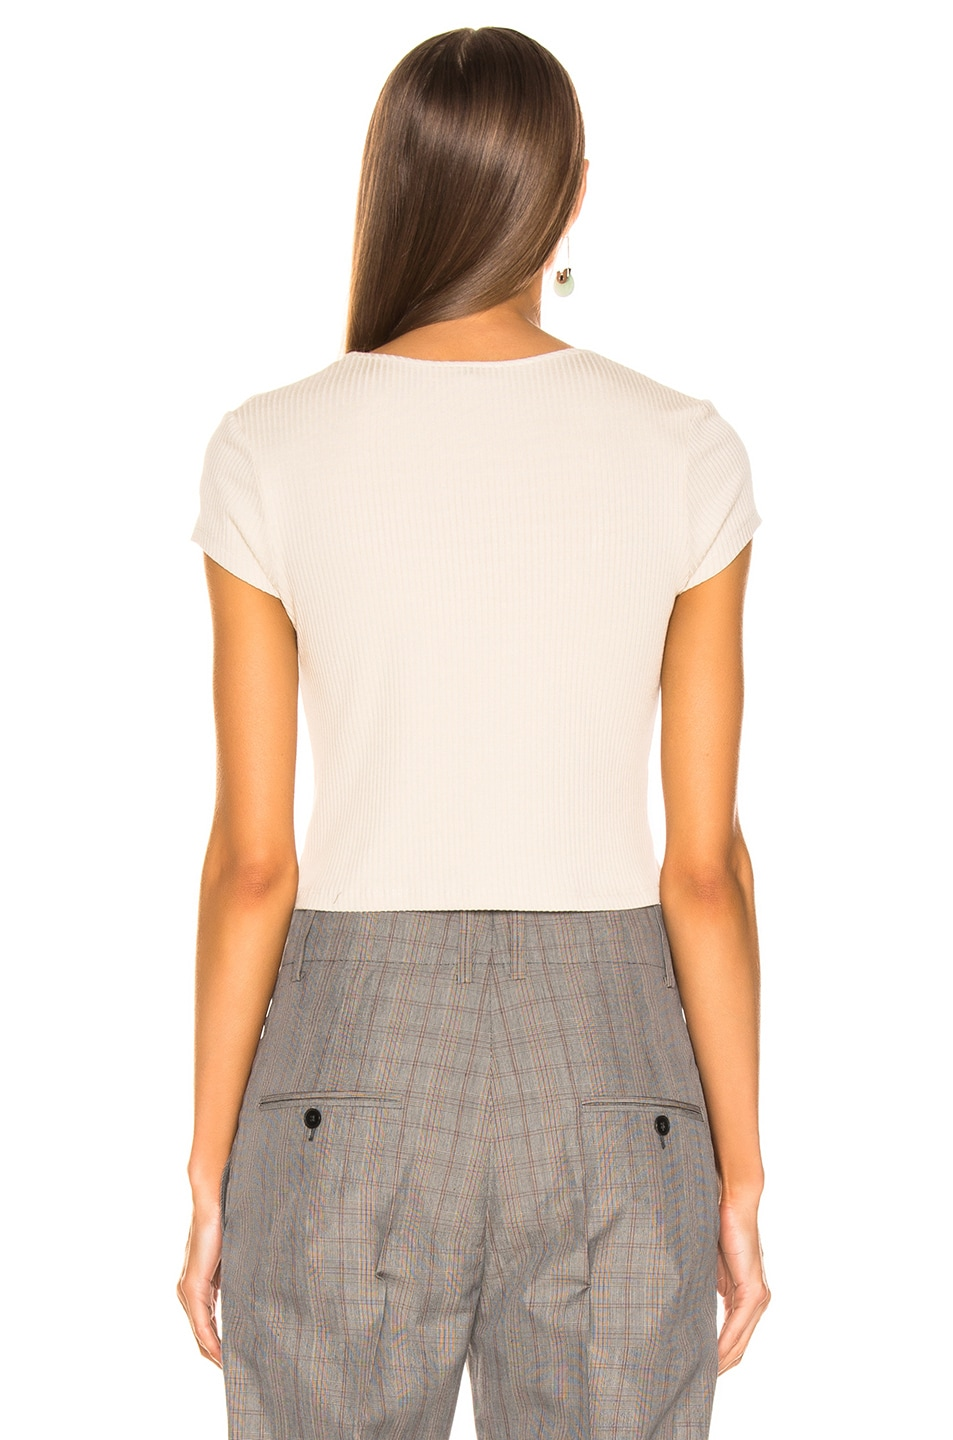 Image 3 of The Range Alloy Rib Cropped Tee in Limestone